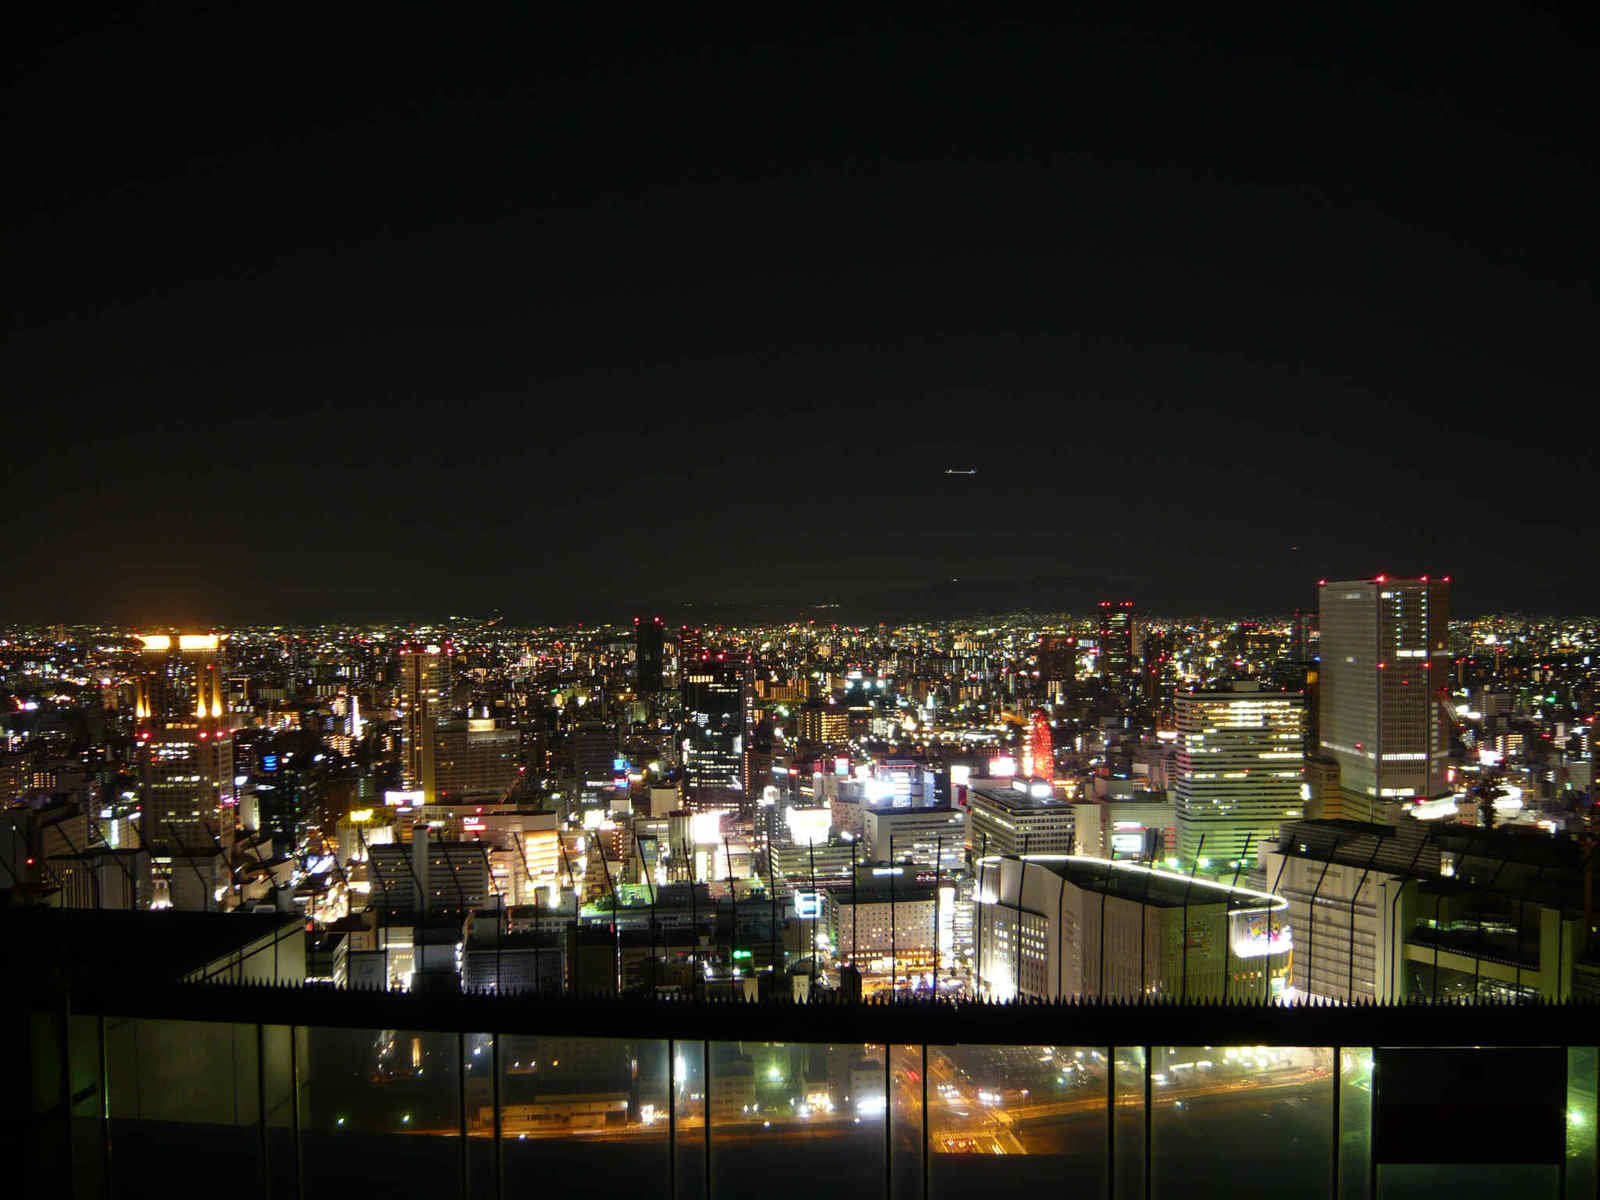 Night_view_3_2